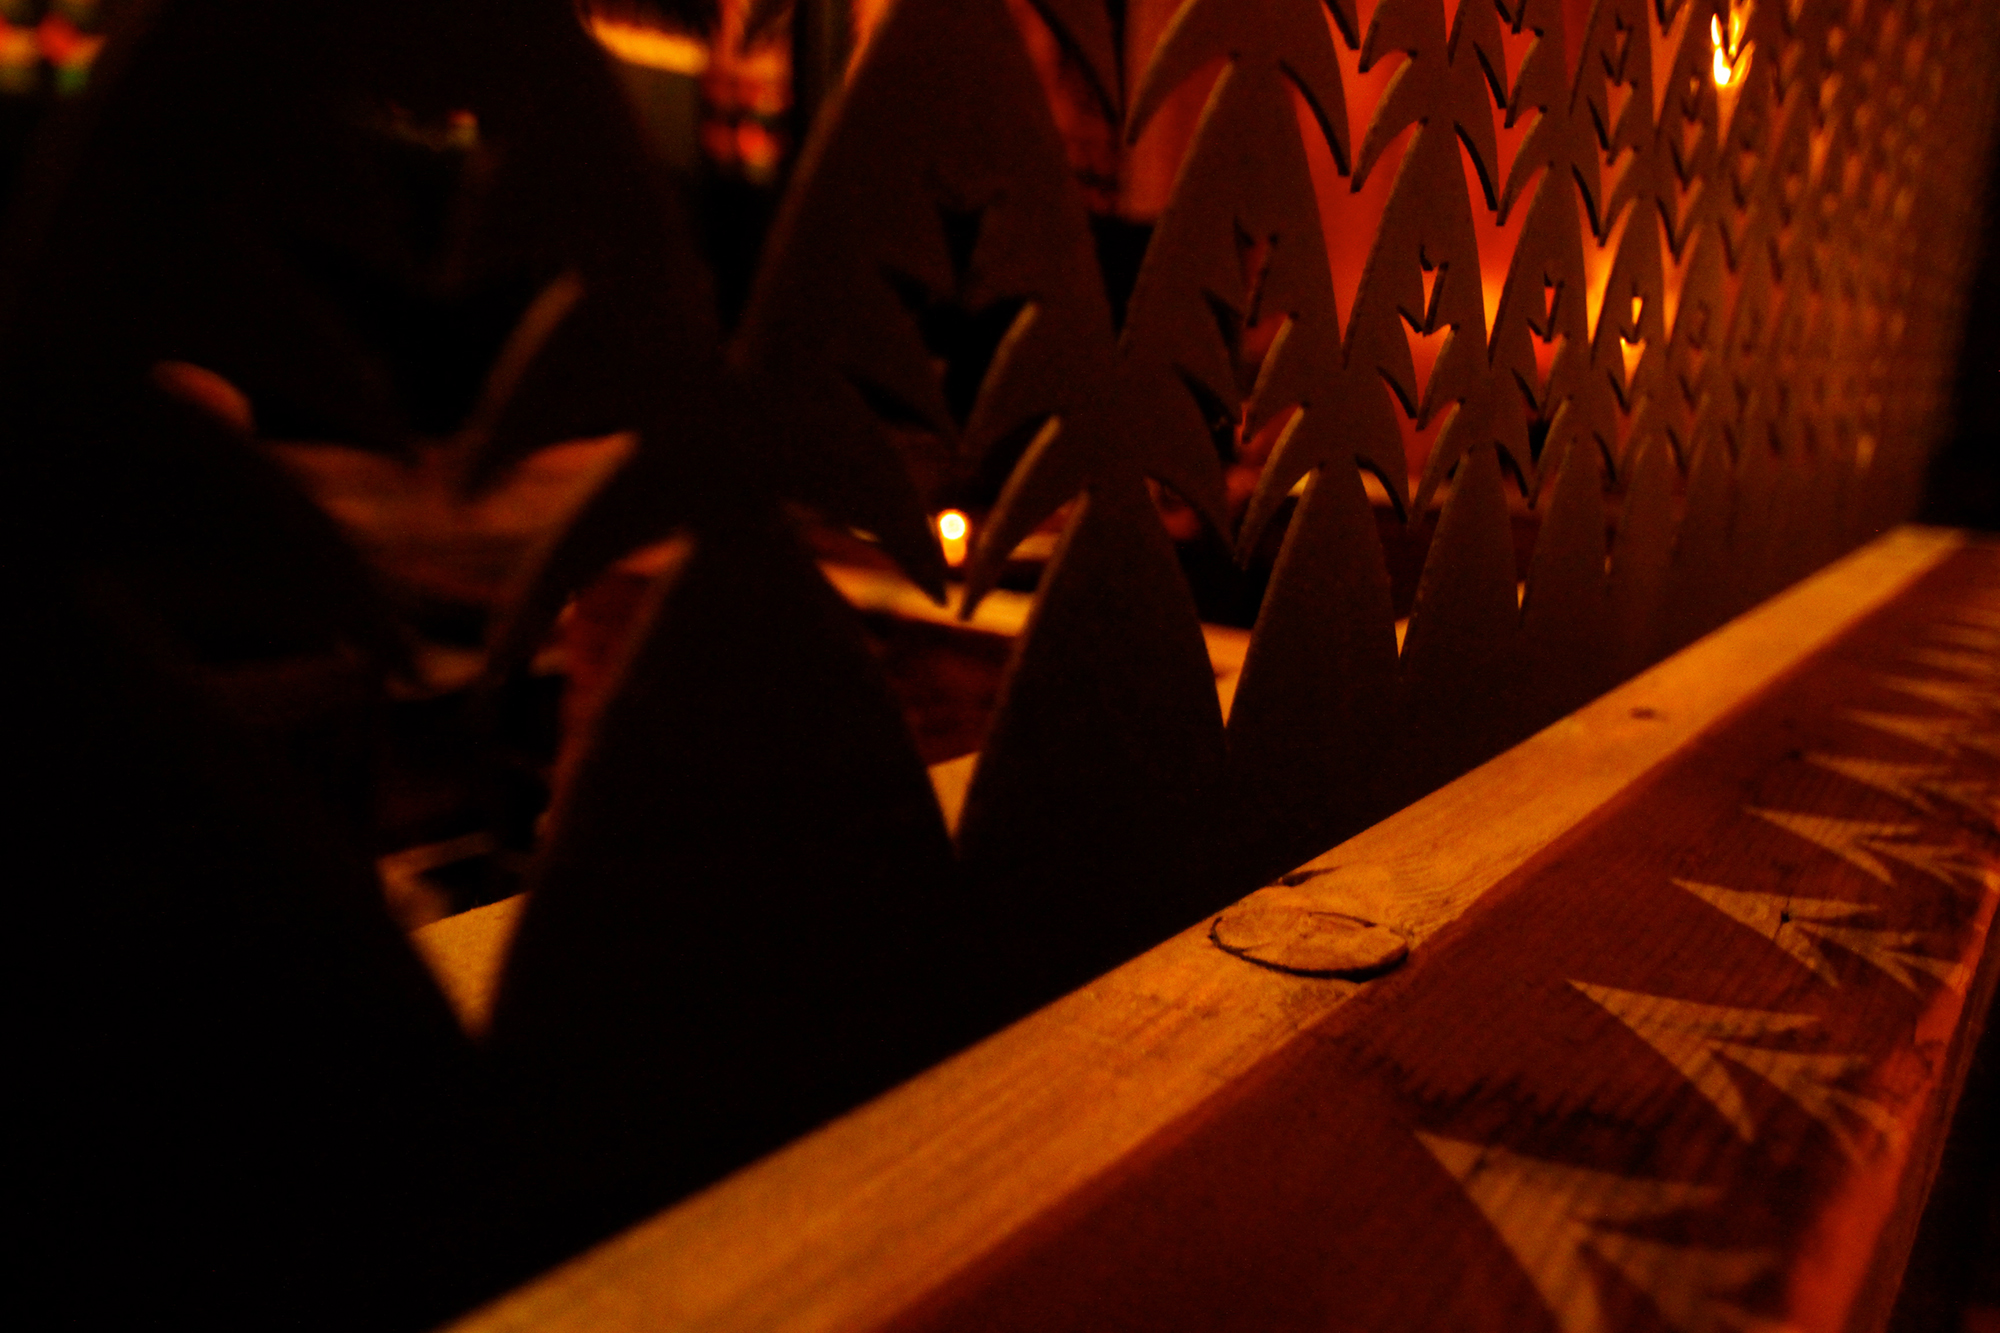 Detailed close up of Duende furniture